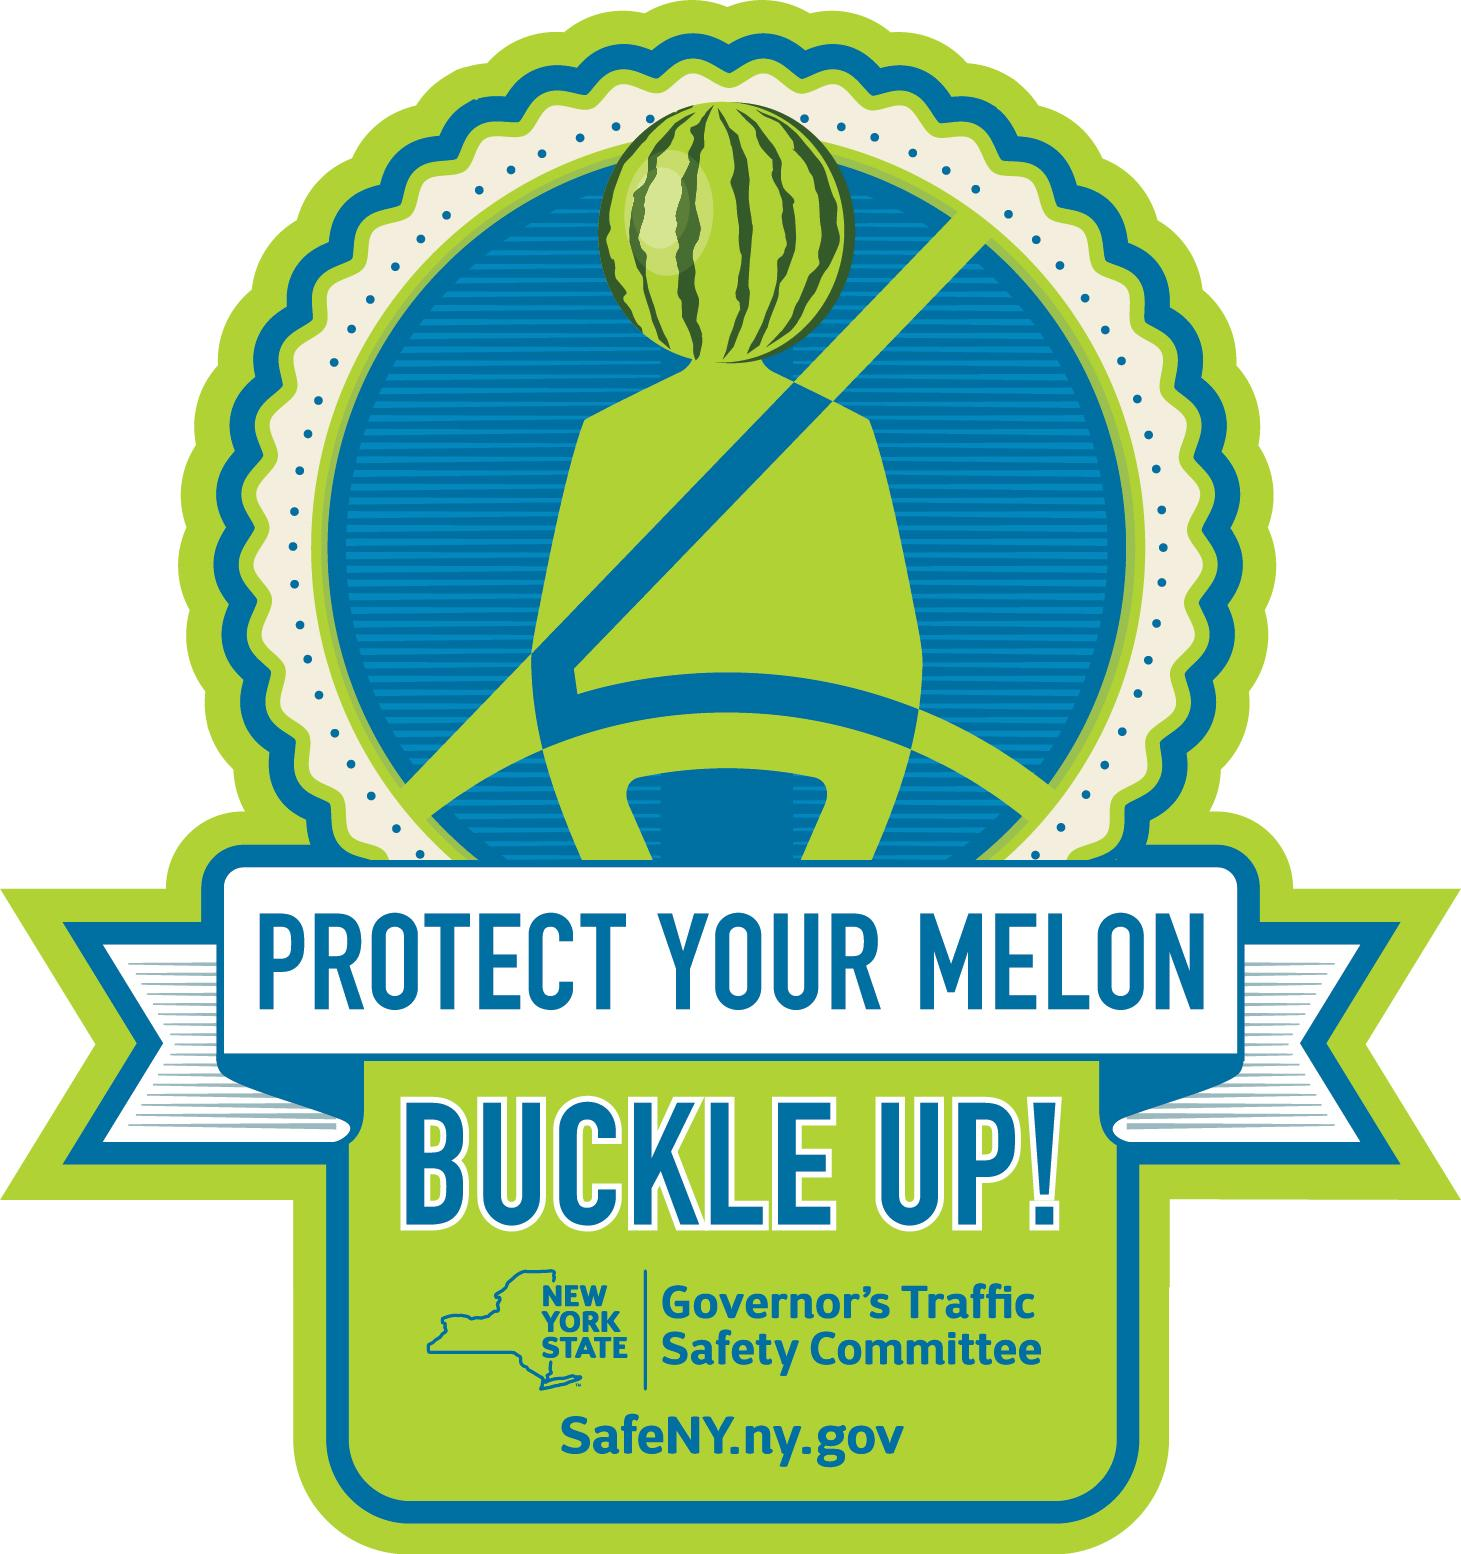 NYS Protect Your Melon logo